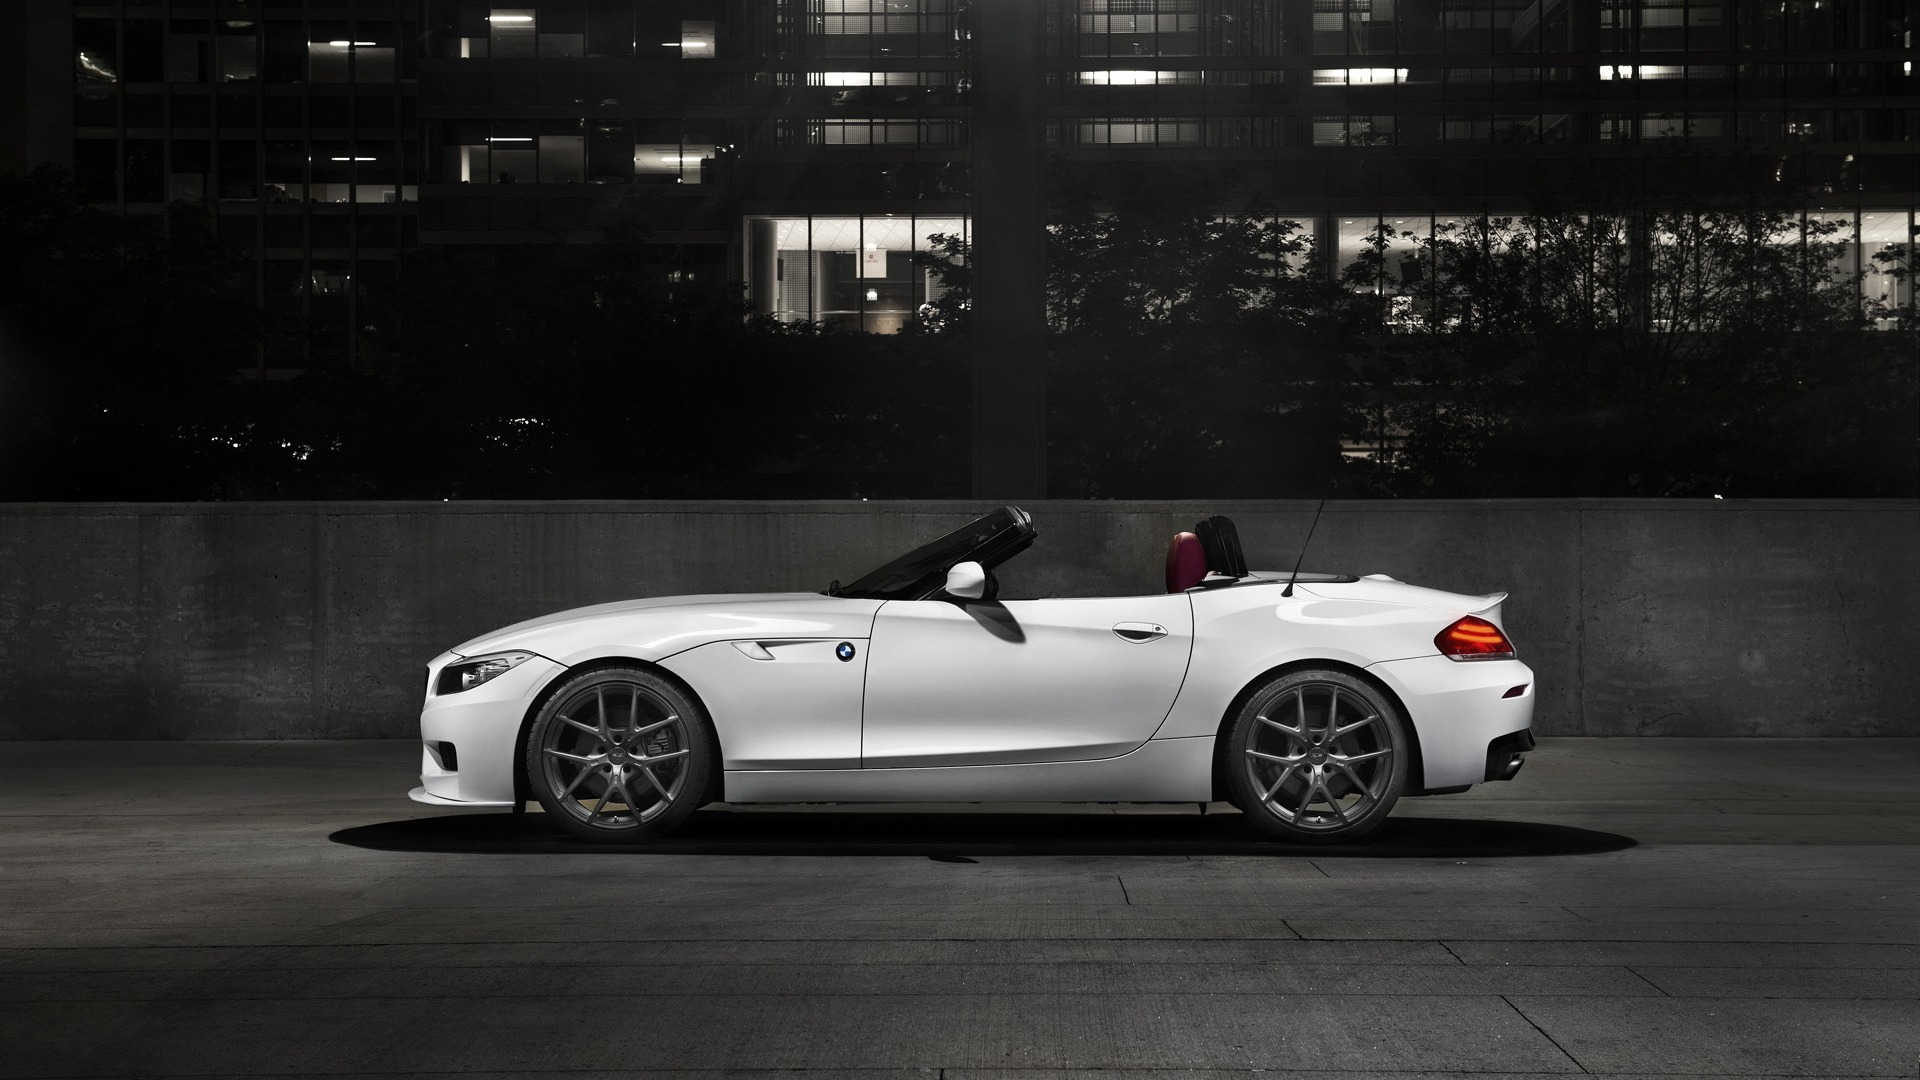 Papel De Parede Do Roadster Bmw Z4 Car Hd Visualizacao 10wallpaper Com